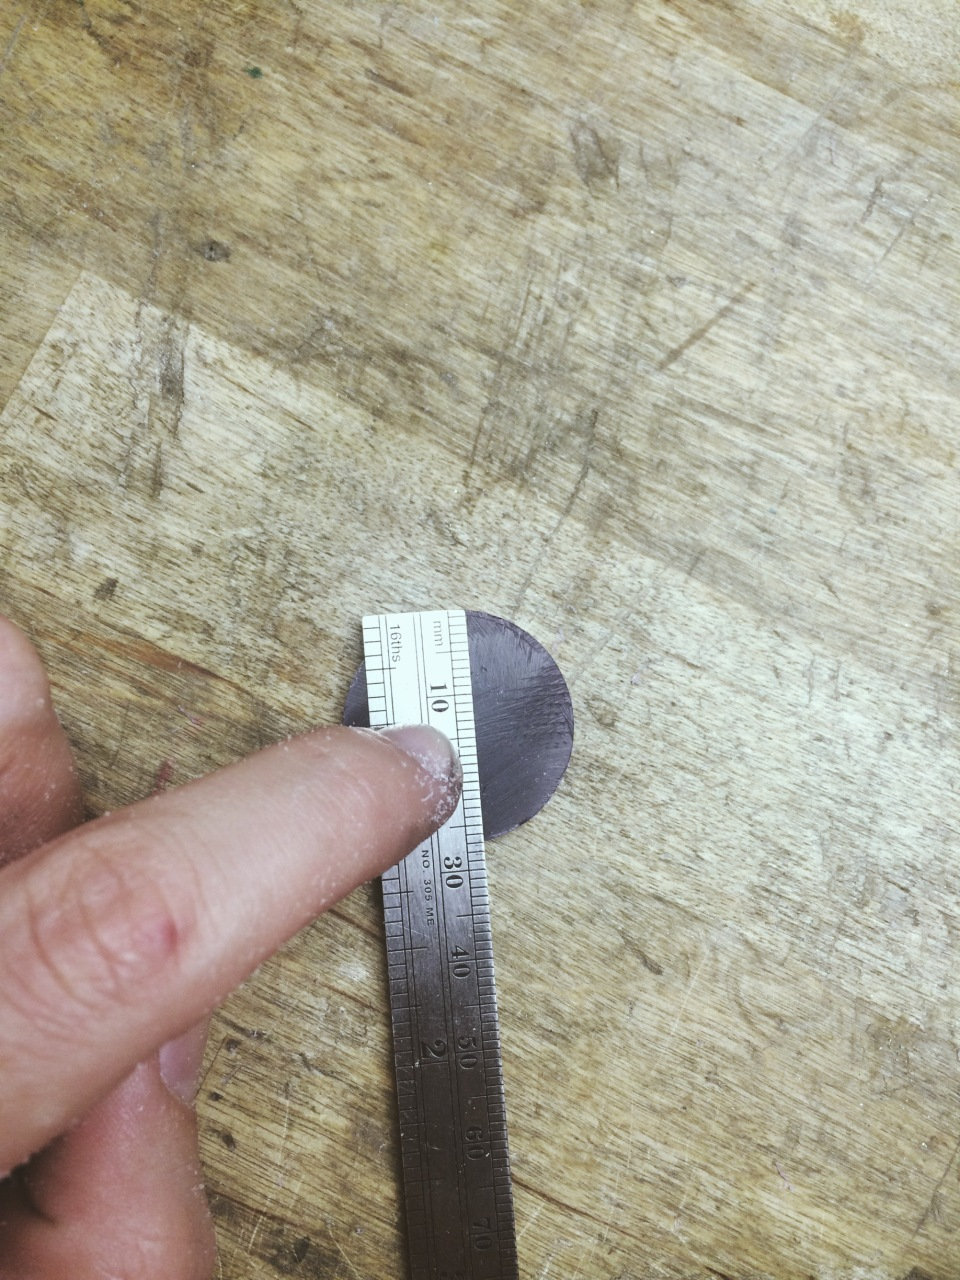 3. Figure out the middle point by dividing the diameter by two and marking that point with a scribe.